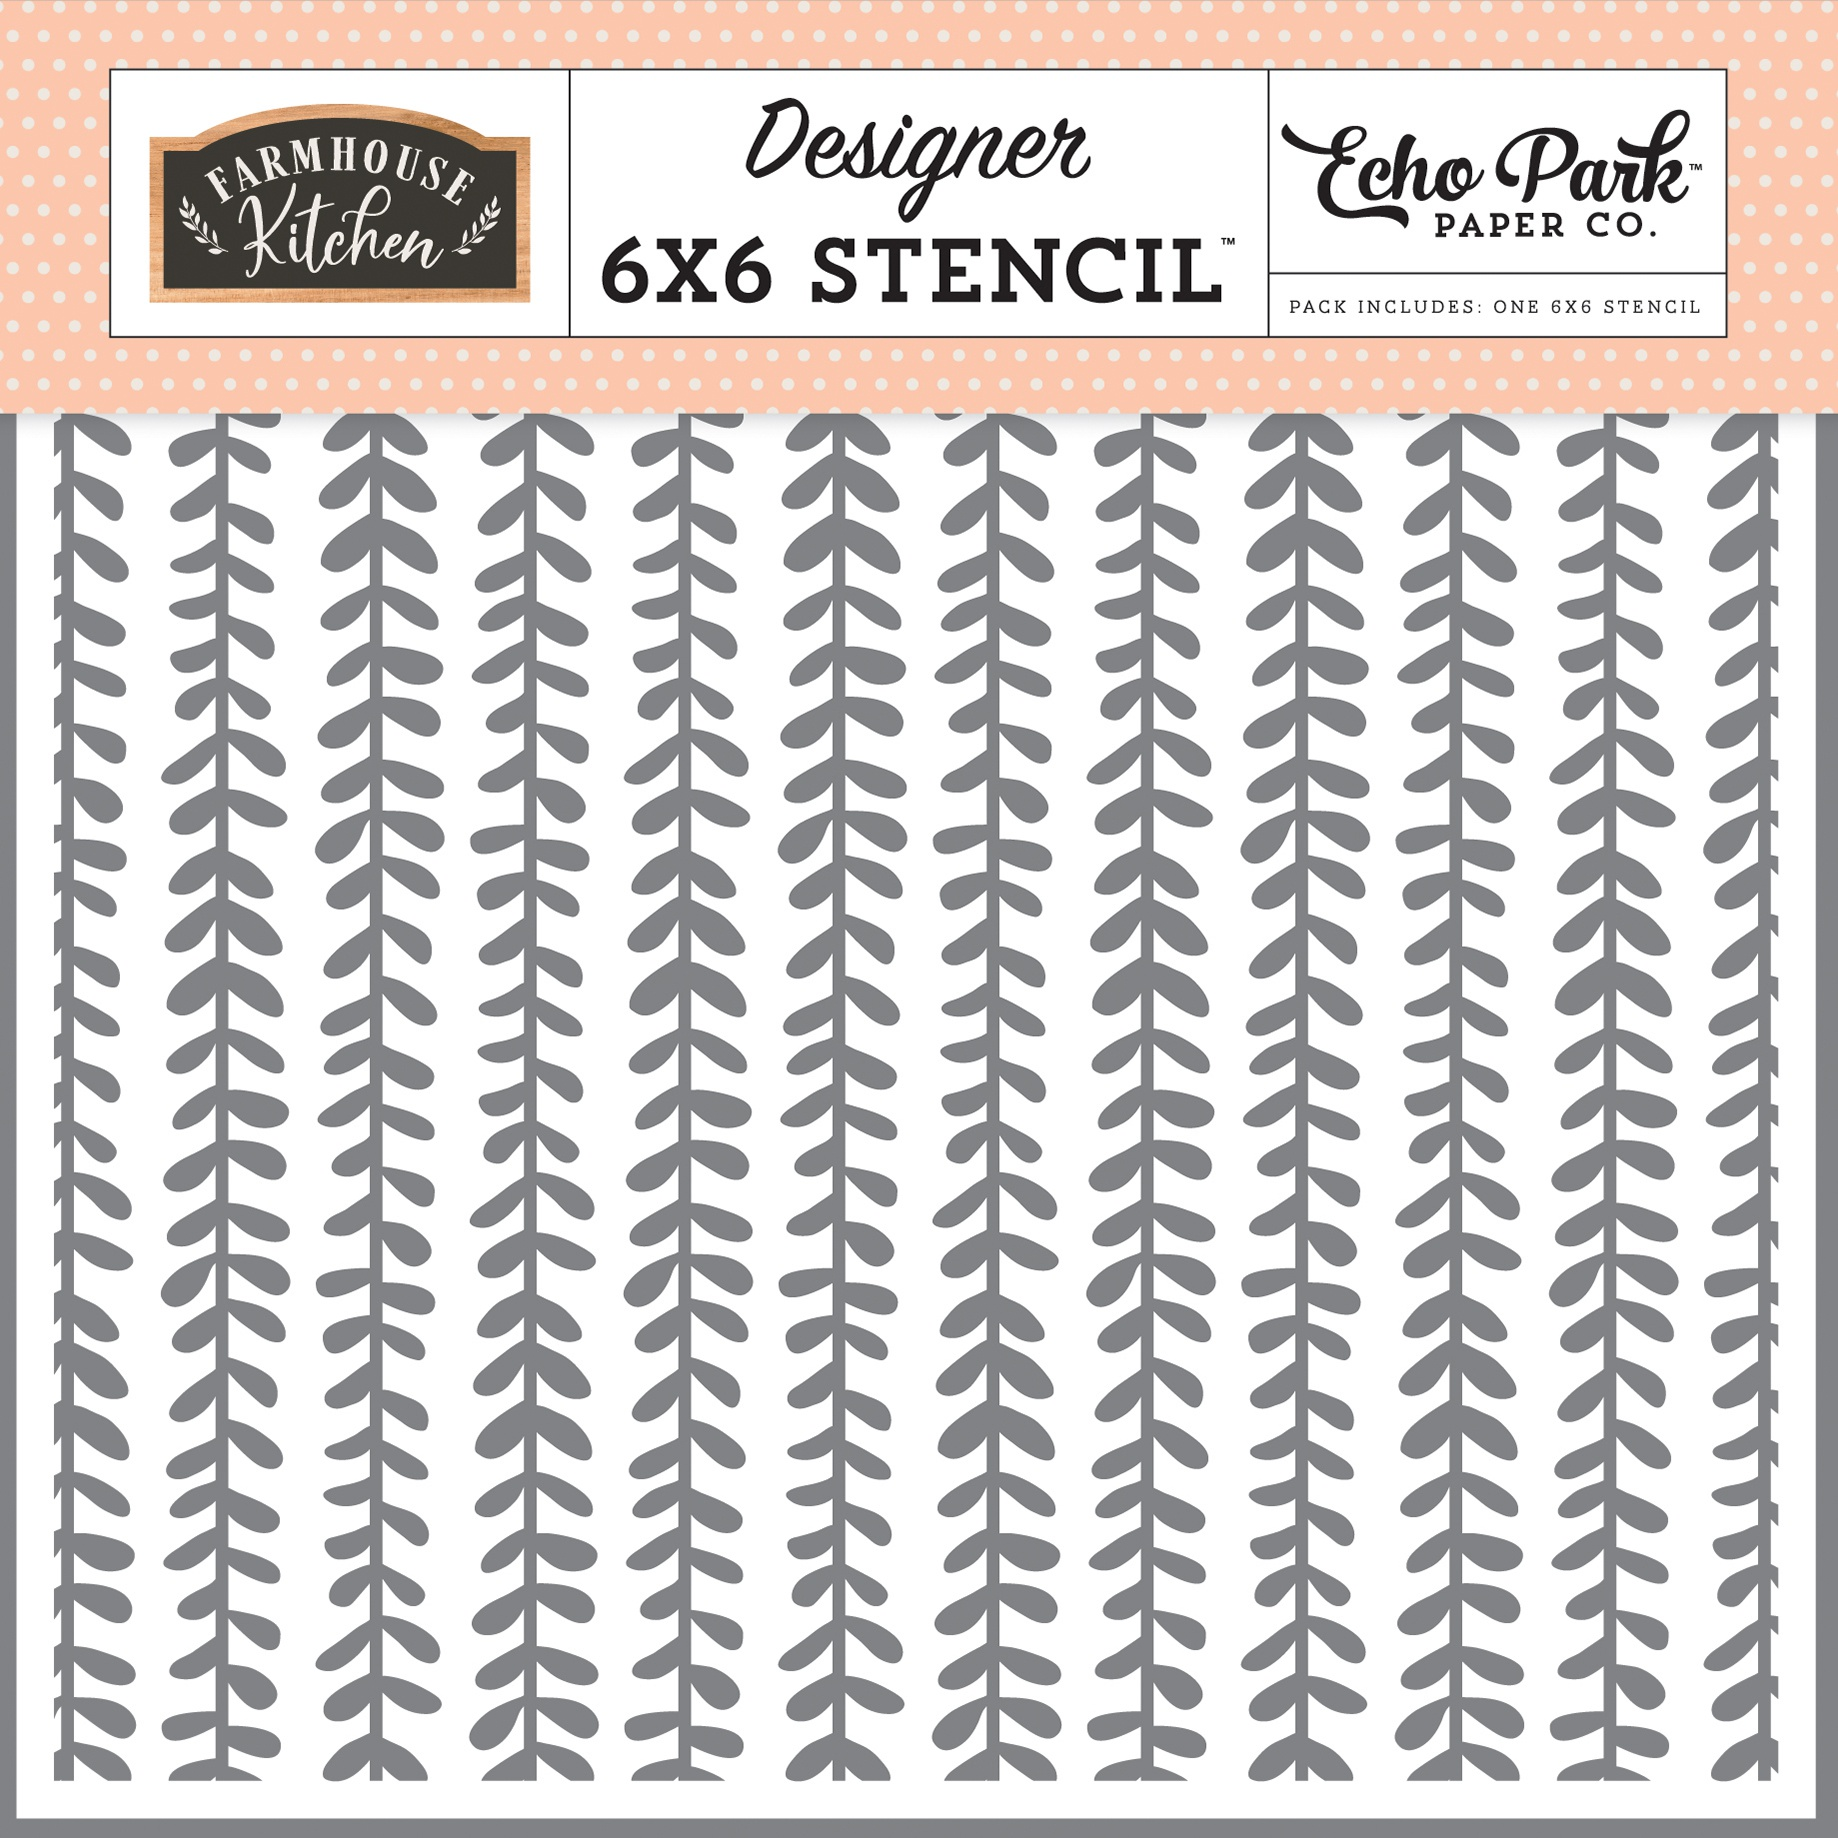 Echo Park Farmhouse Kitchen  - Sweet Vines Stencil